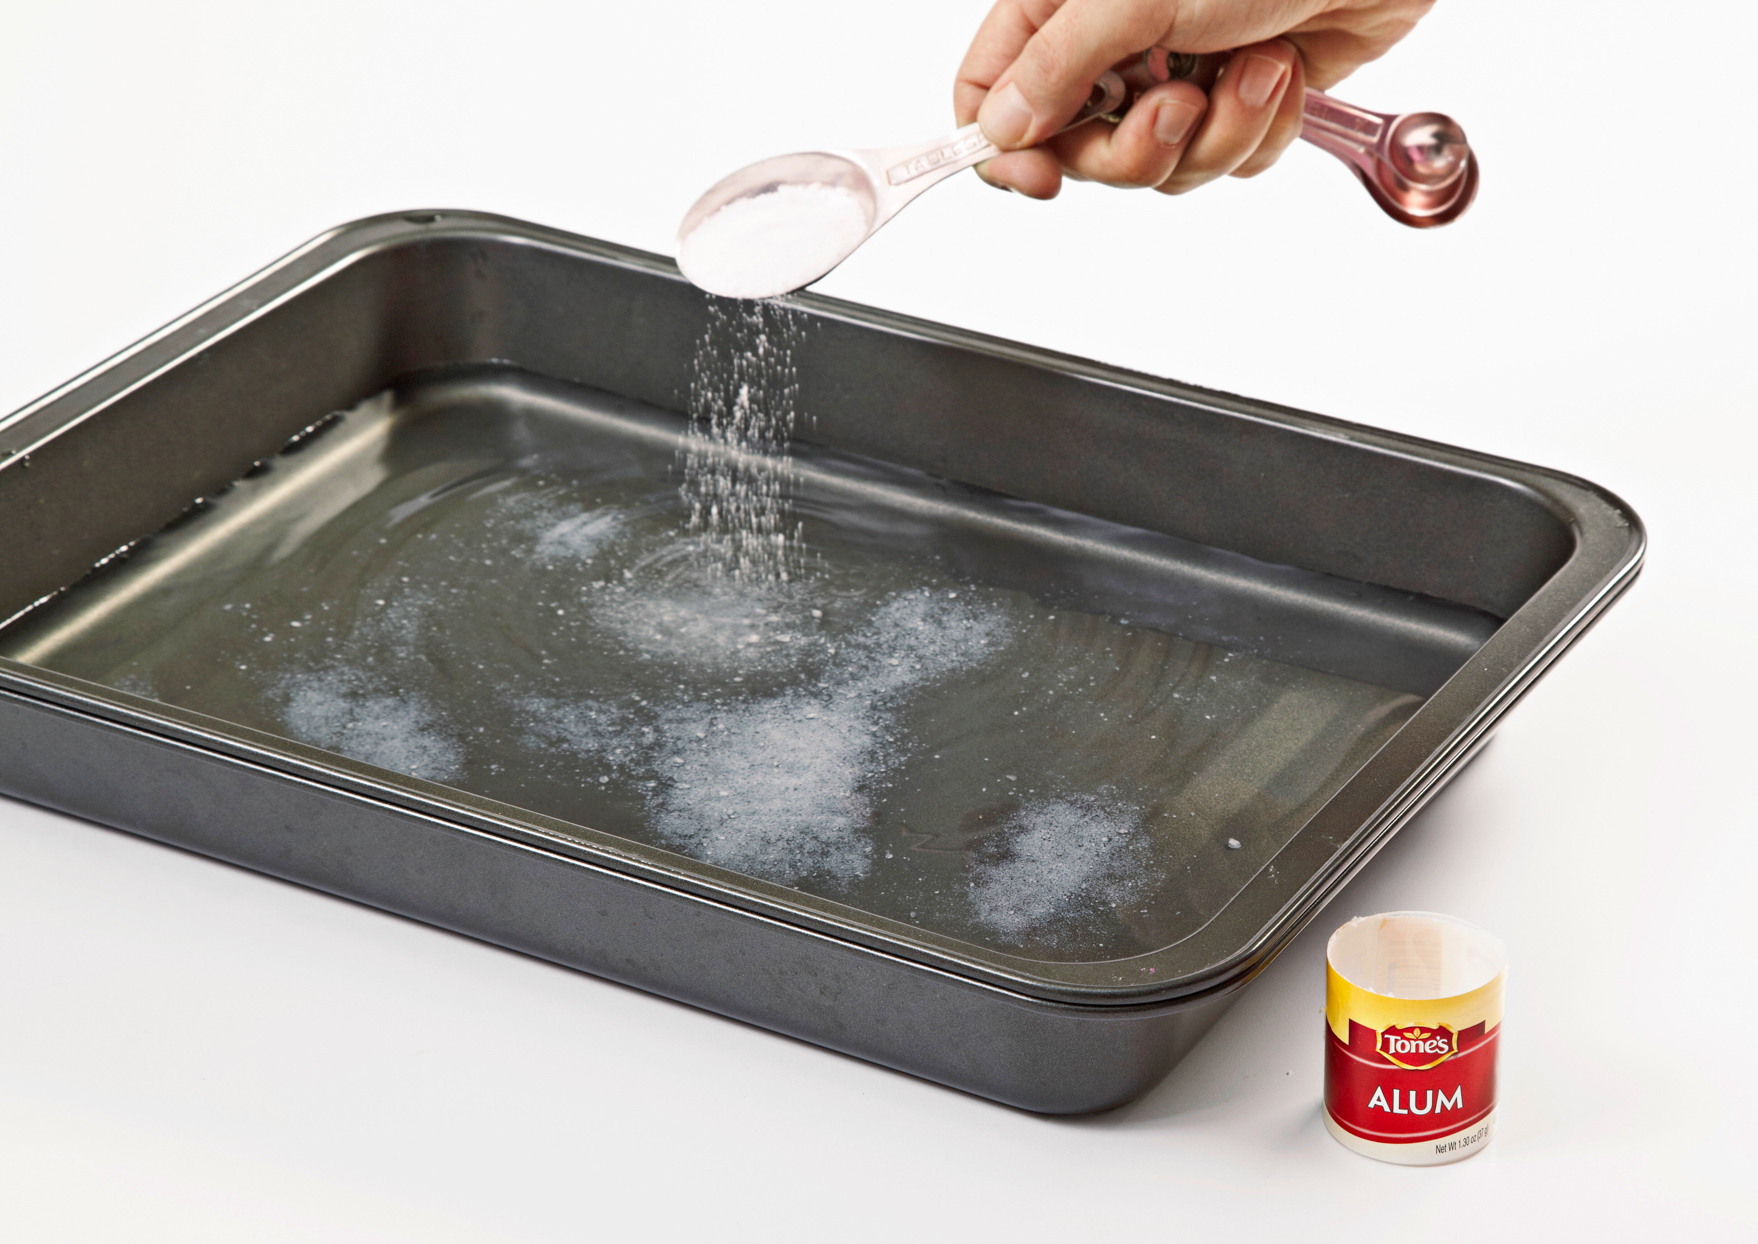 pouring alum into water